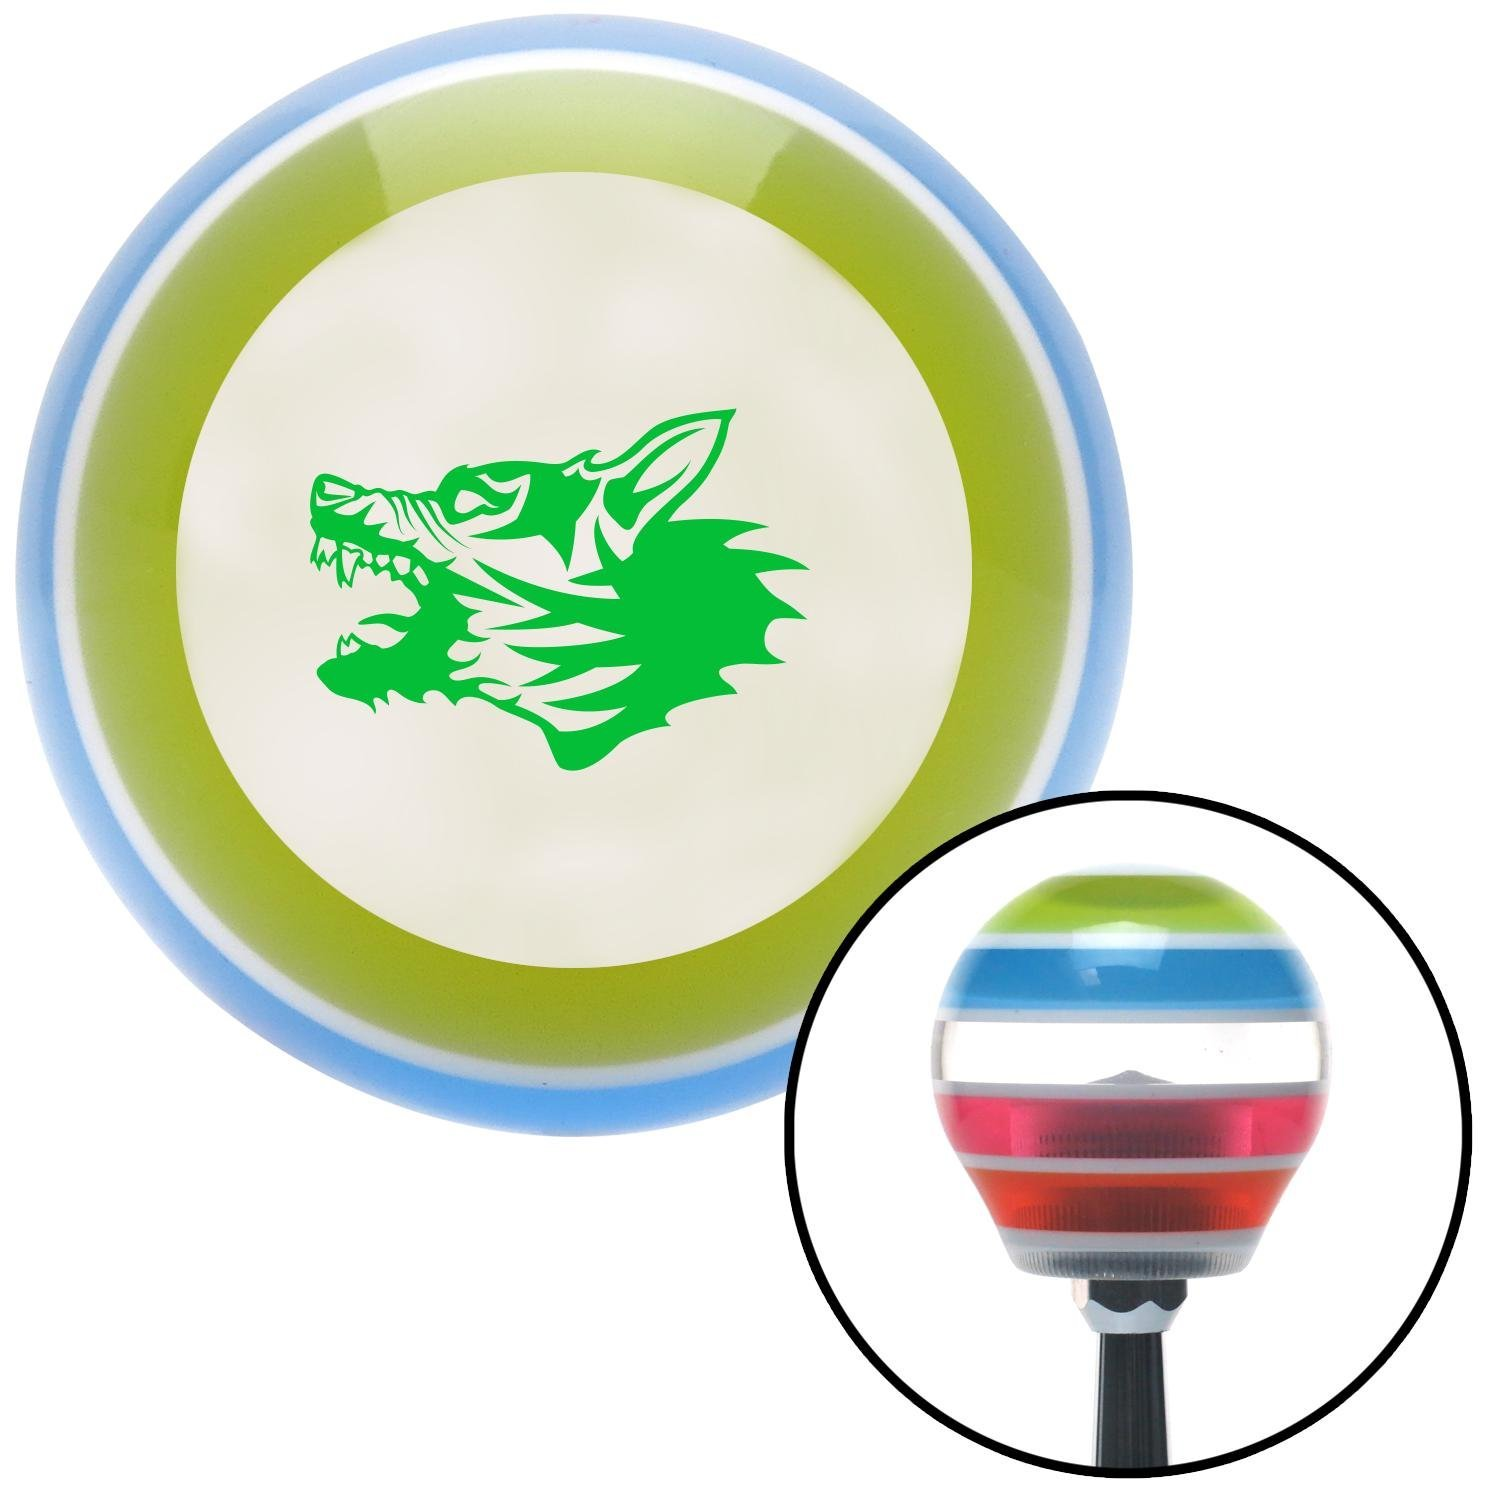 American Shifter 130310 Stripe Shift Knob with M16 x 1.5 Insert Green Angry Dog